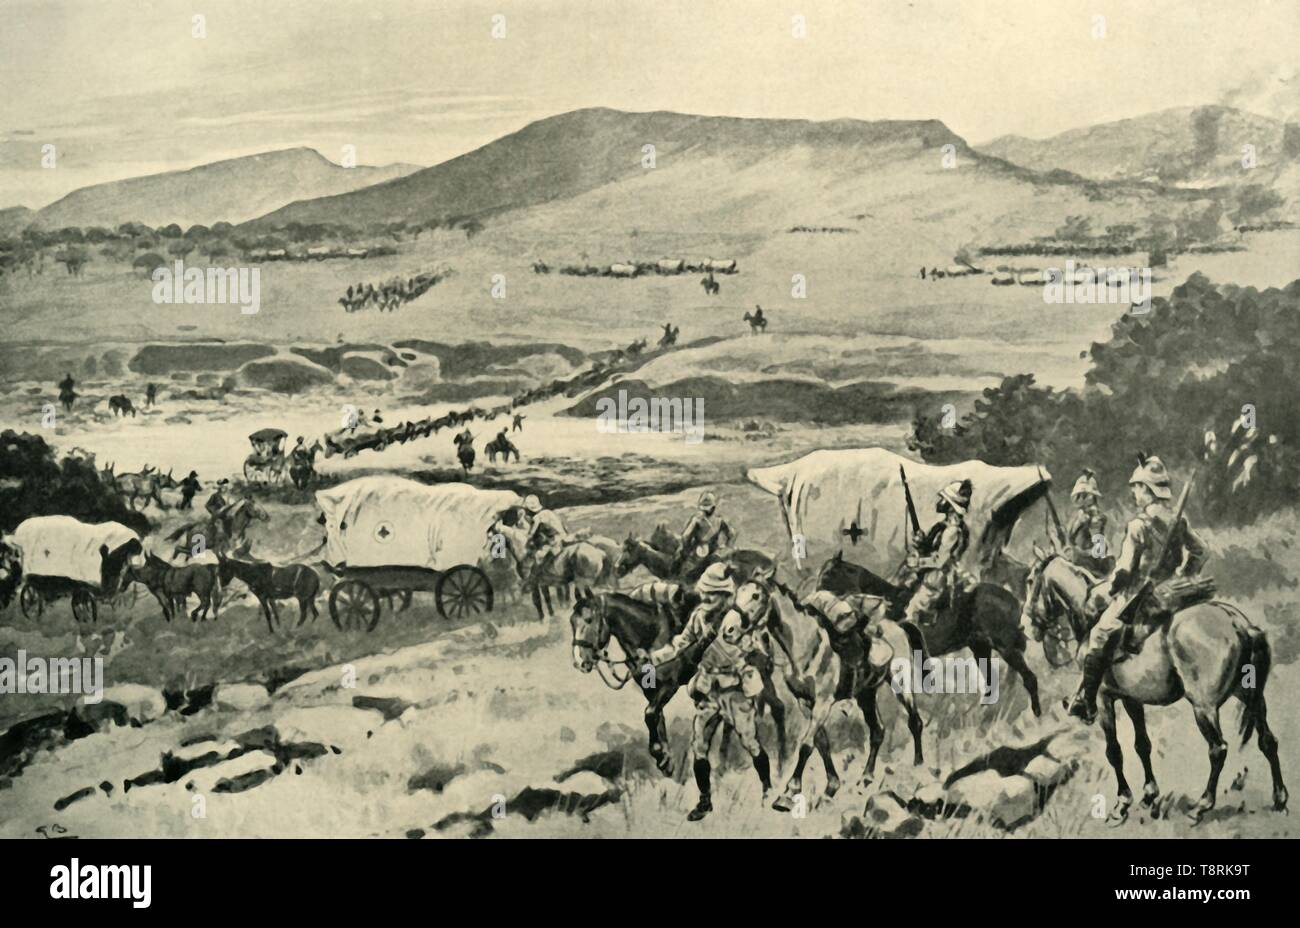 'Generals French and Hutton Crossing the Vaal into Transvaal Territory', (1901).  Creator: Gordon Frederick Browne. - Stock Image